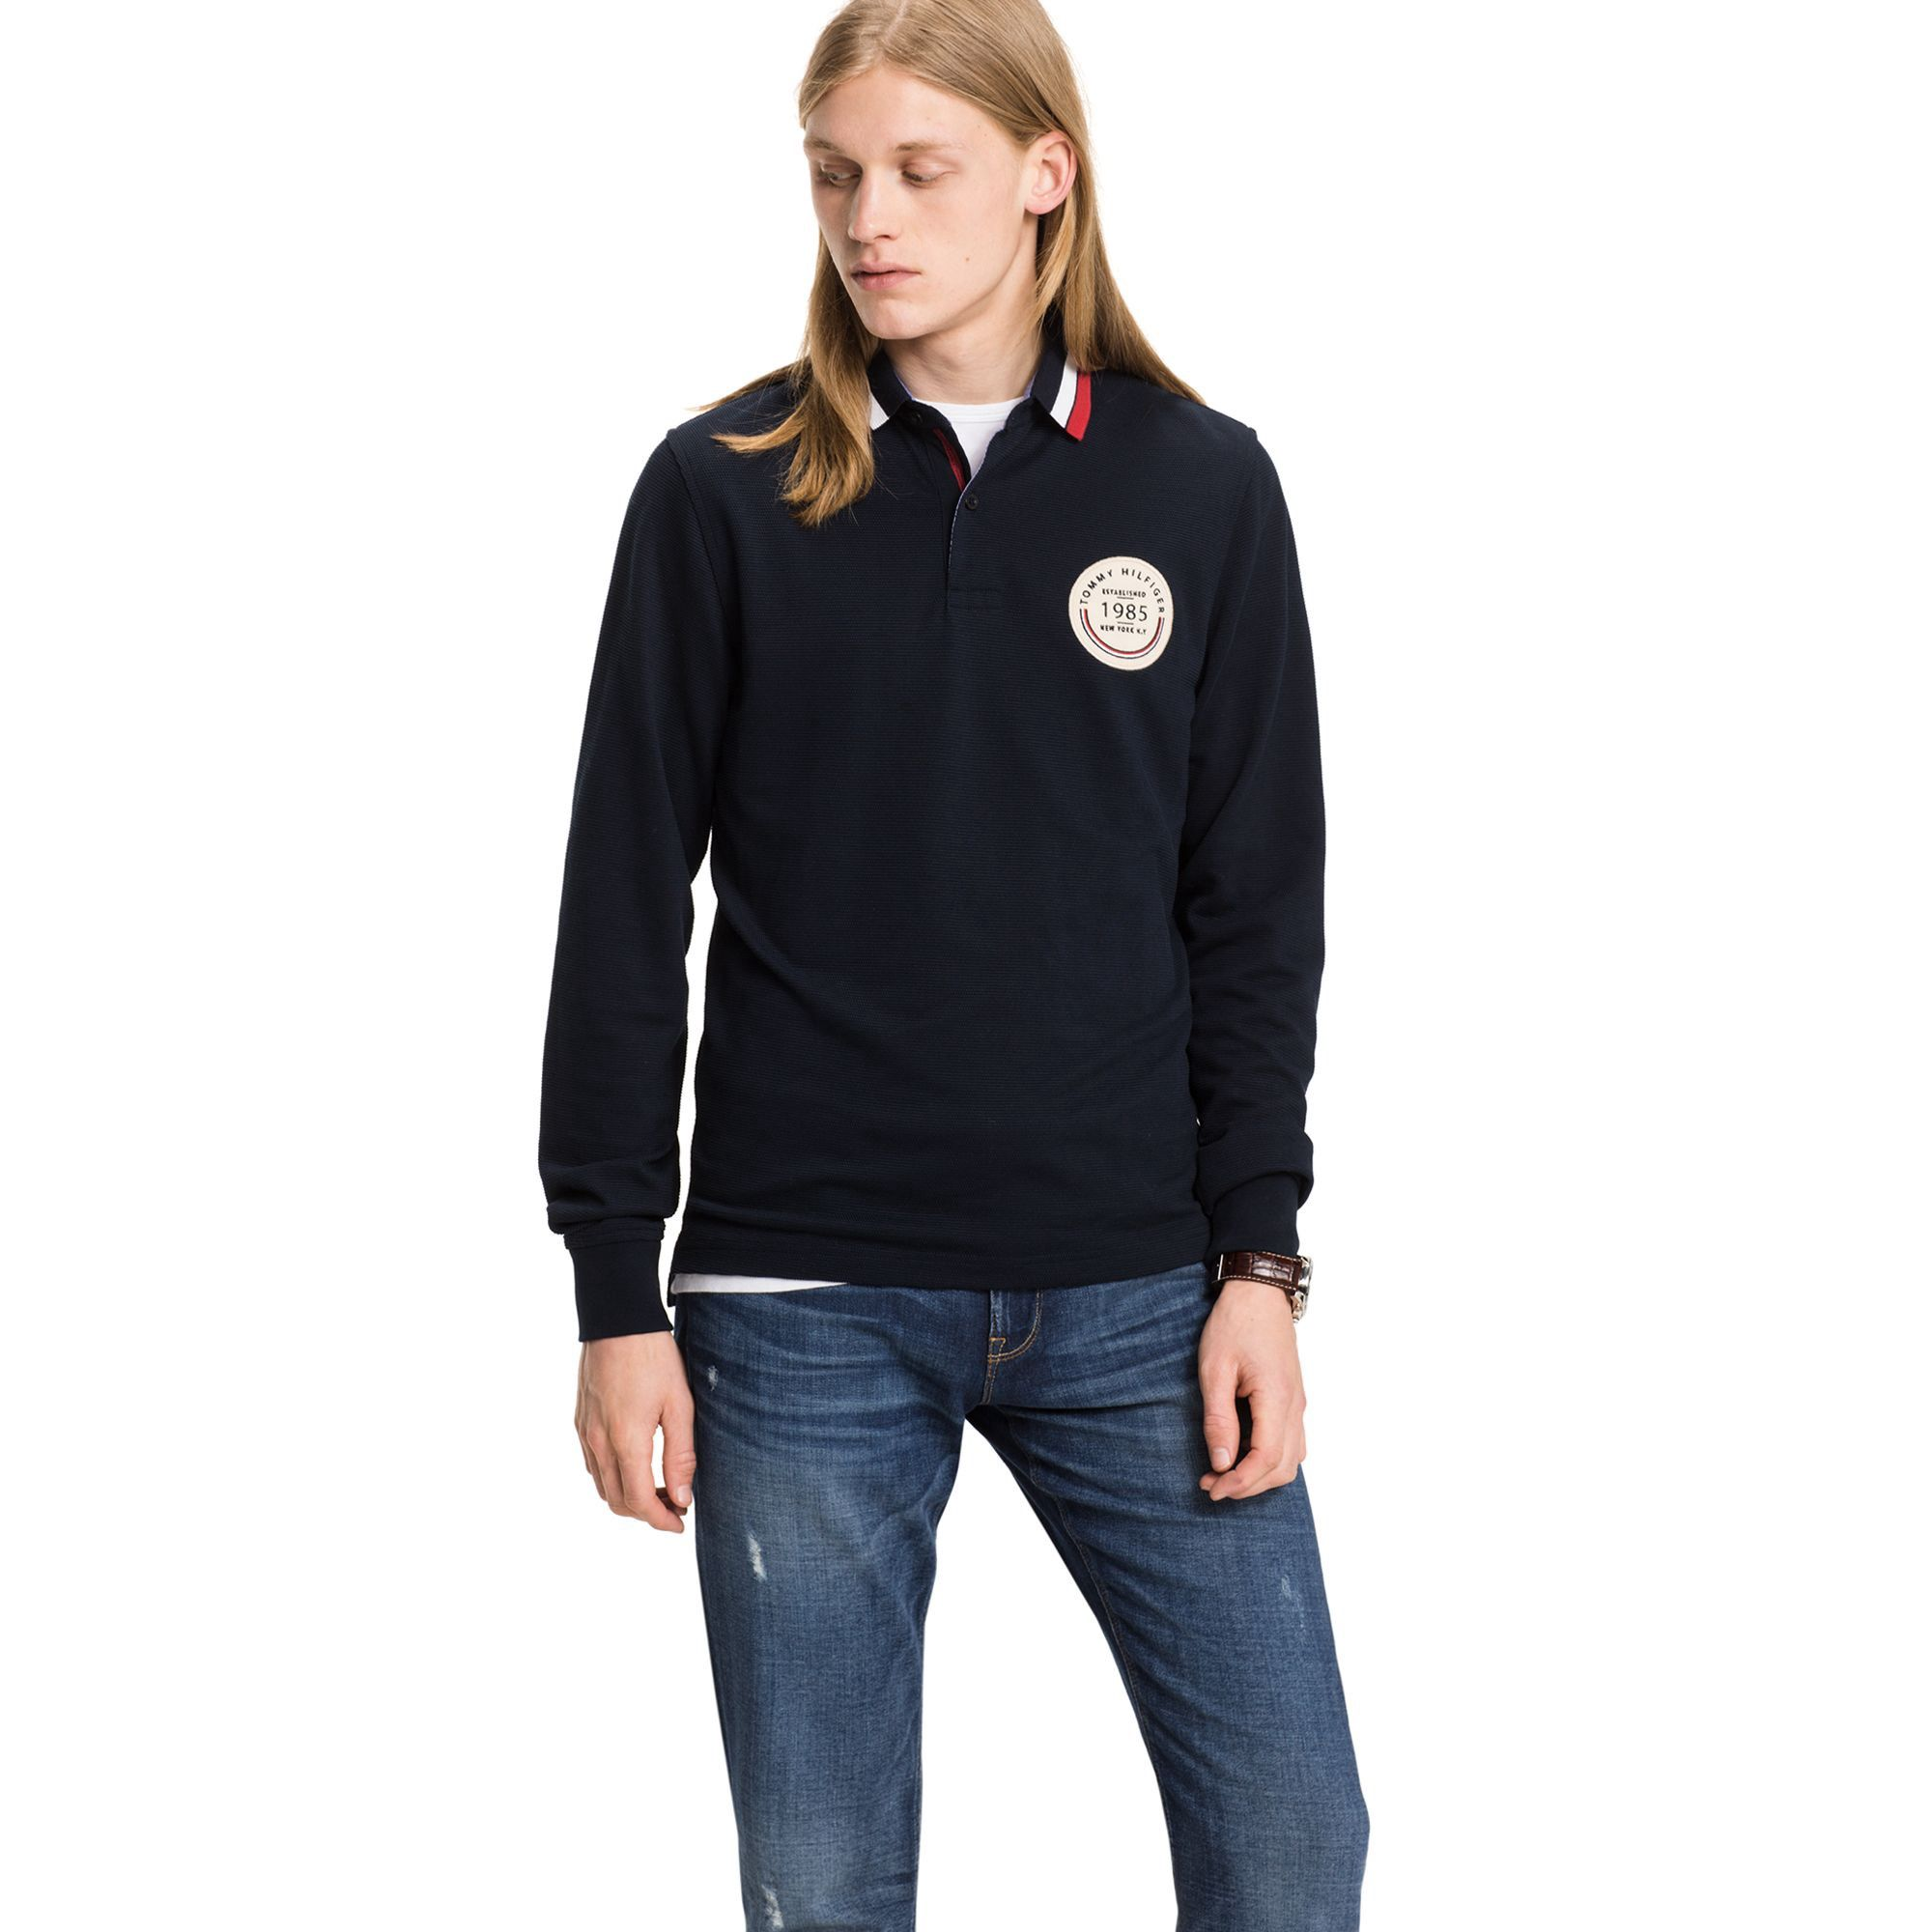 TOMMY HILFIGER SLIM FIT LONG-SLEEVE POLO - SKY CAPTAIN.  tommyhilfiger   cloth   faadd4439a129